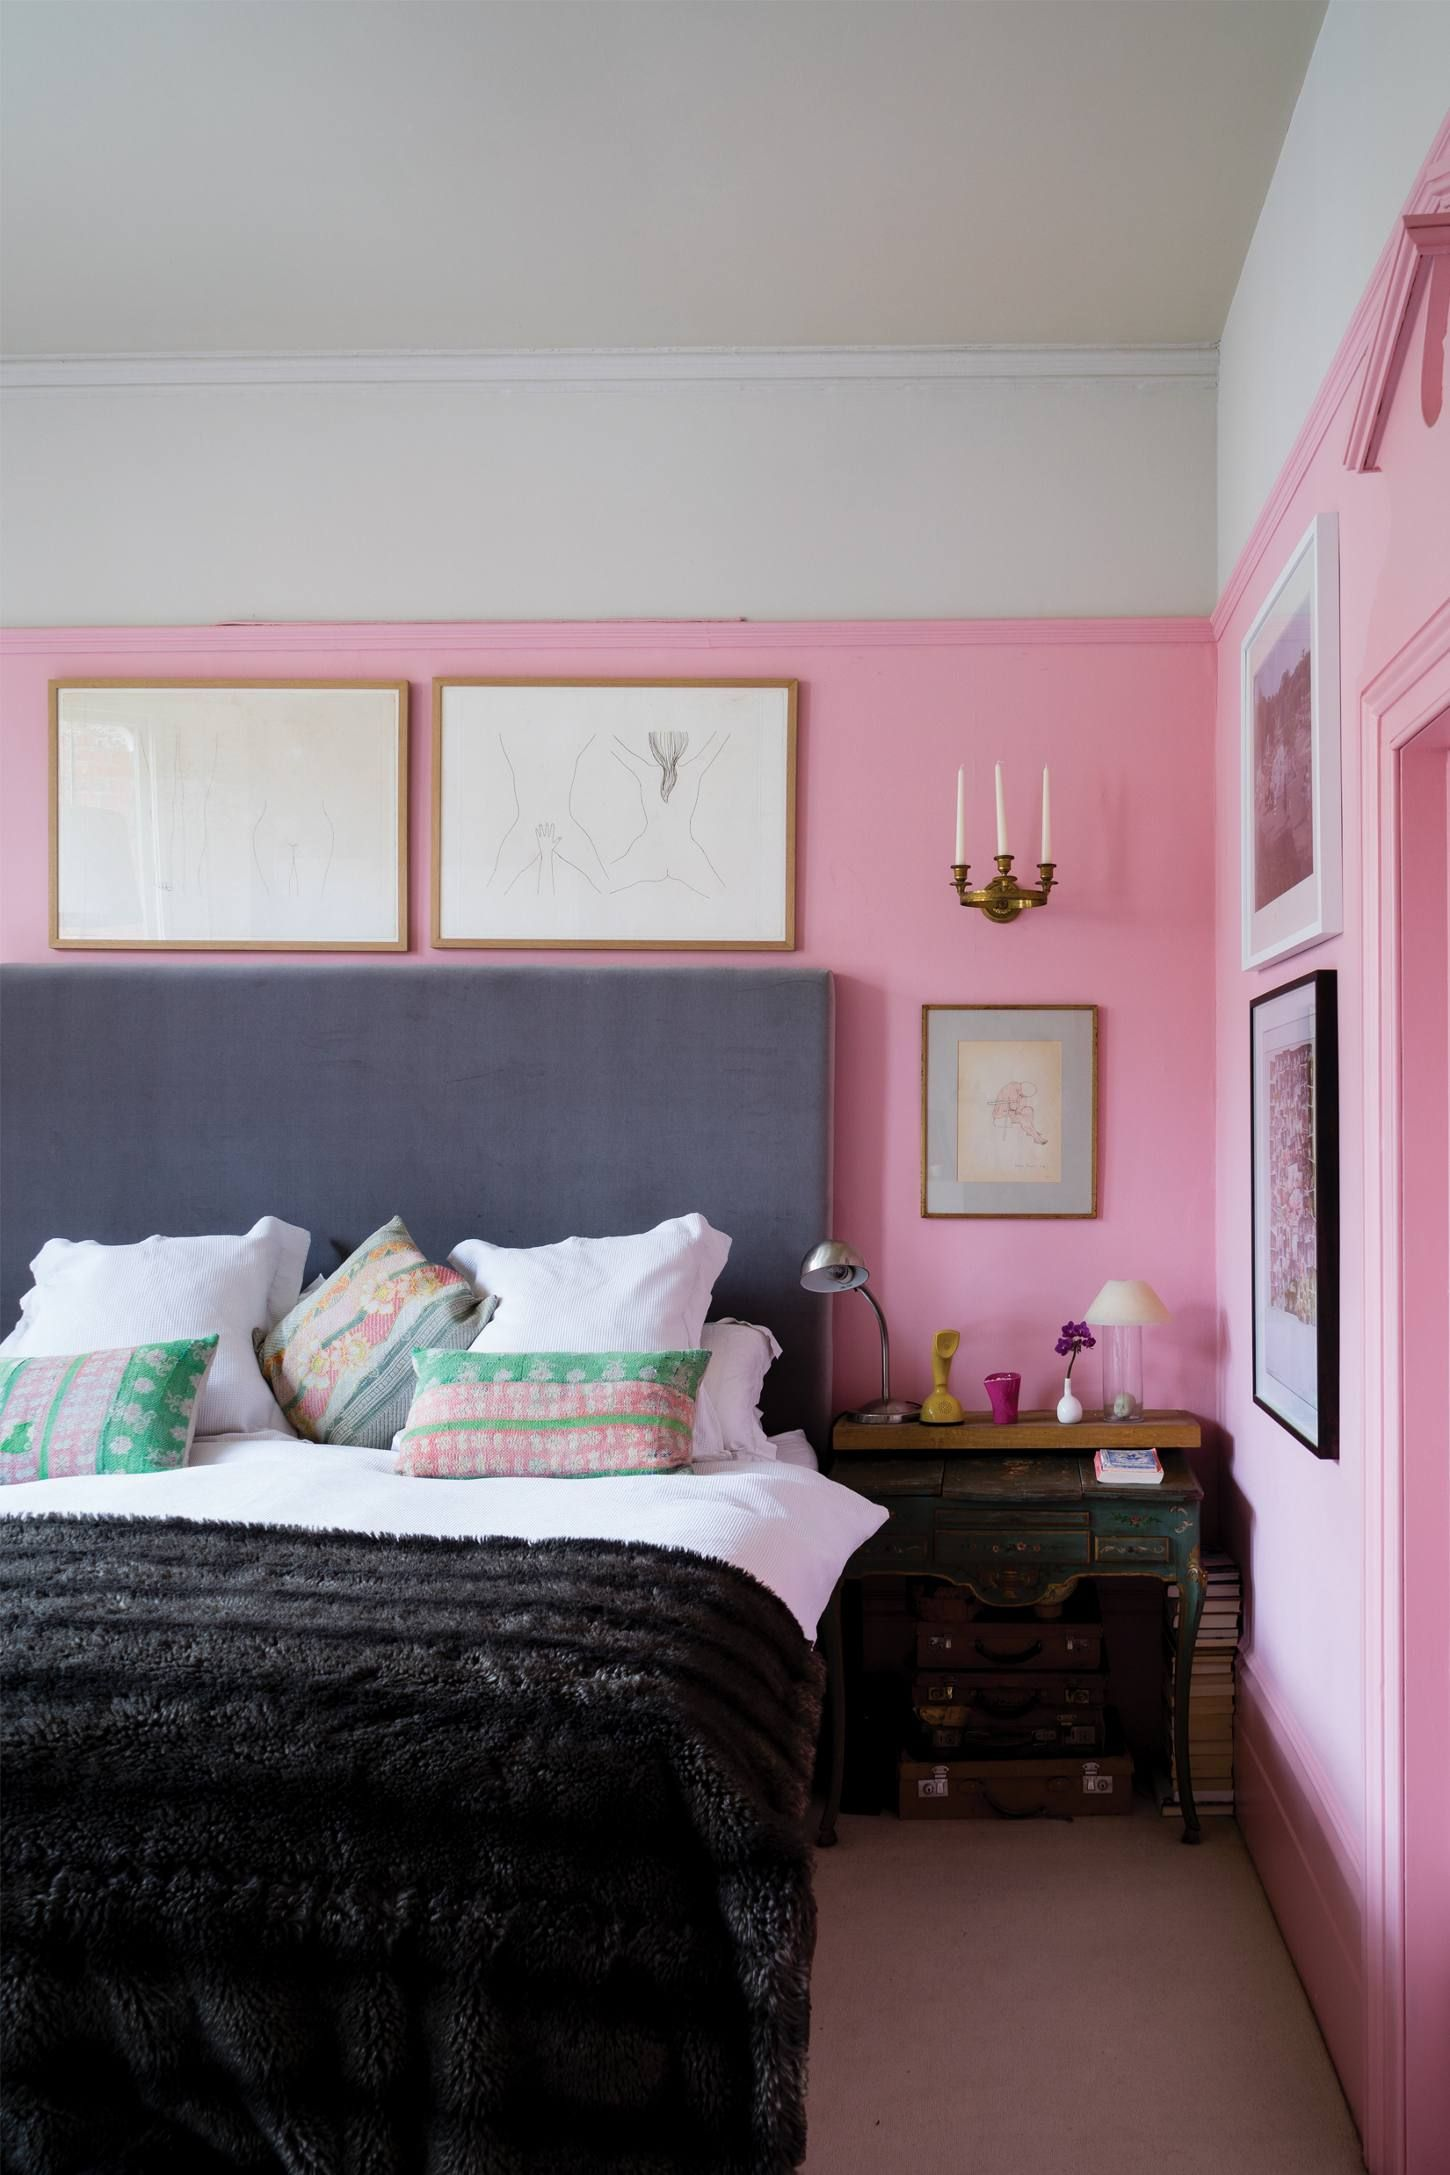 Nancy S Blushes No 278 1 Gallon In 2020 Pink Bedroom Walls Pink Bedroom For Girls Bedroom Wall Paint